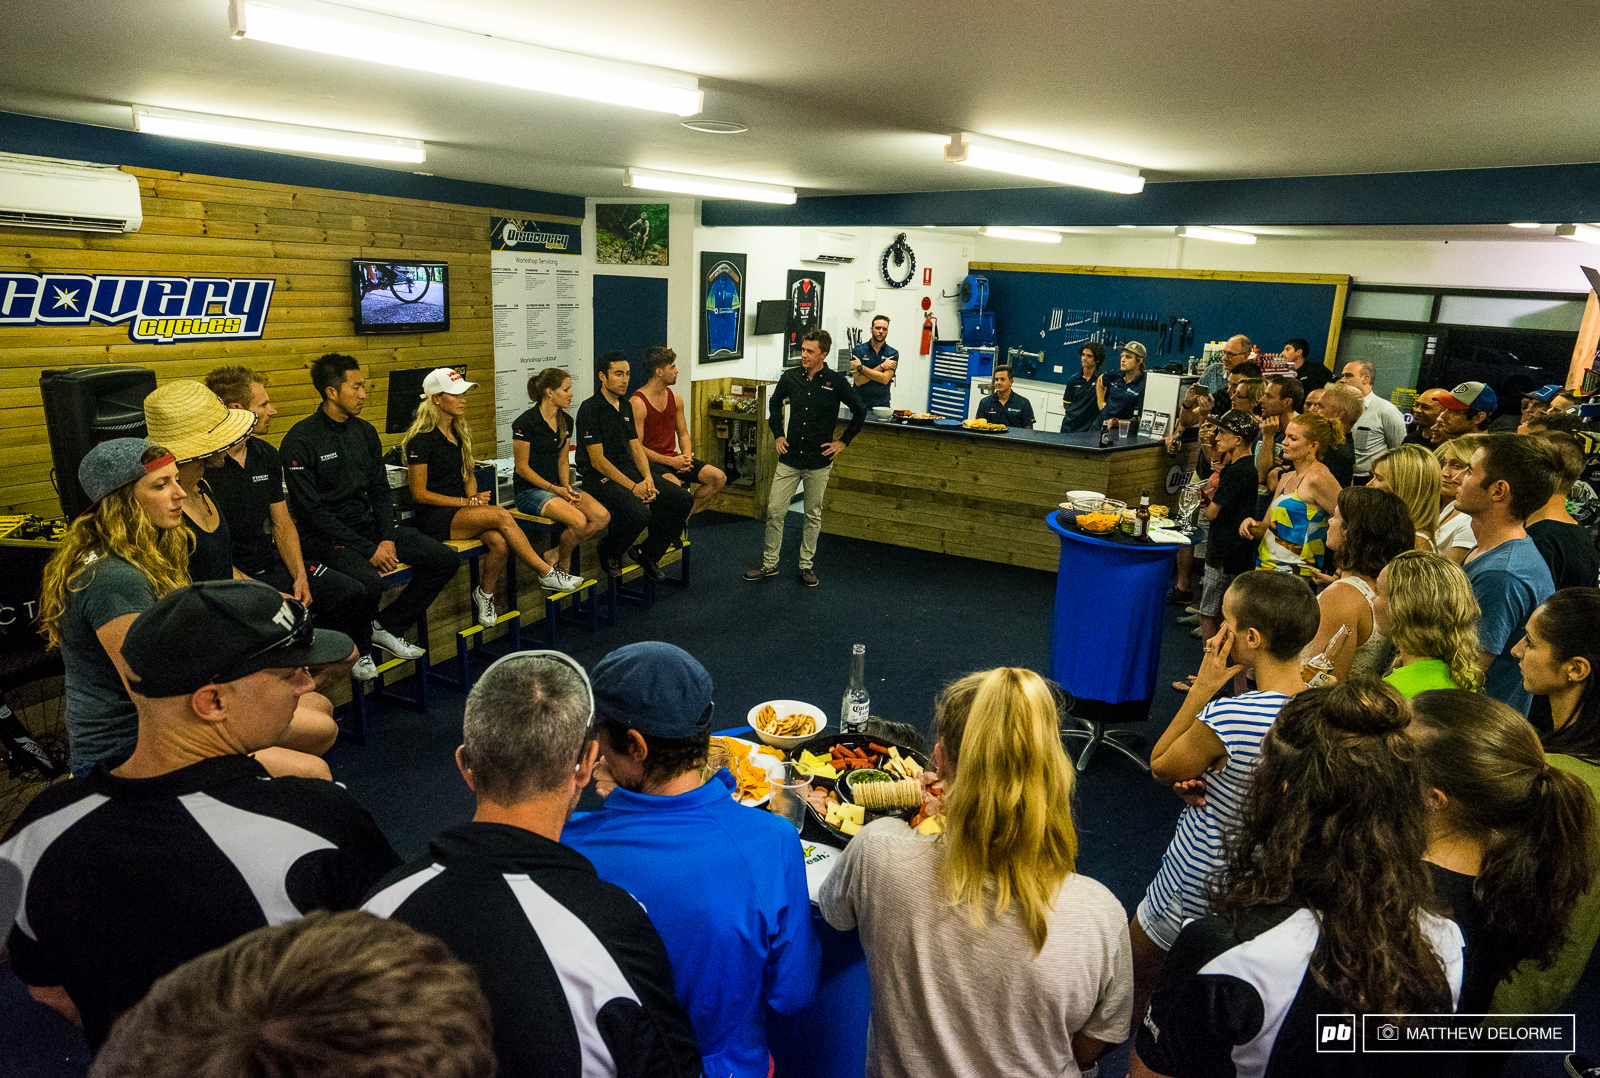 Both Trek Factory XC and DH got together to greet the fans at the local Trek dealer tonight after practice.